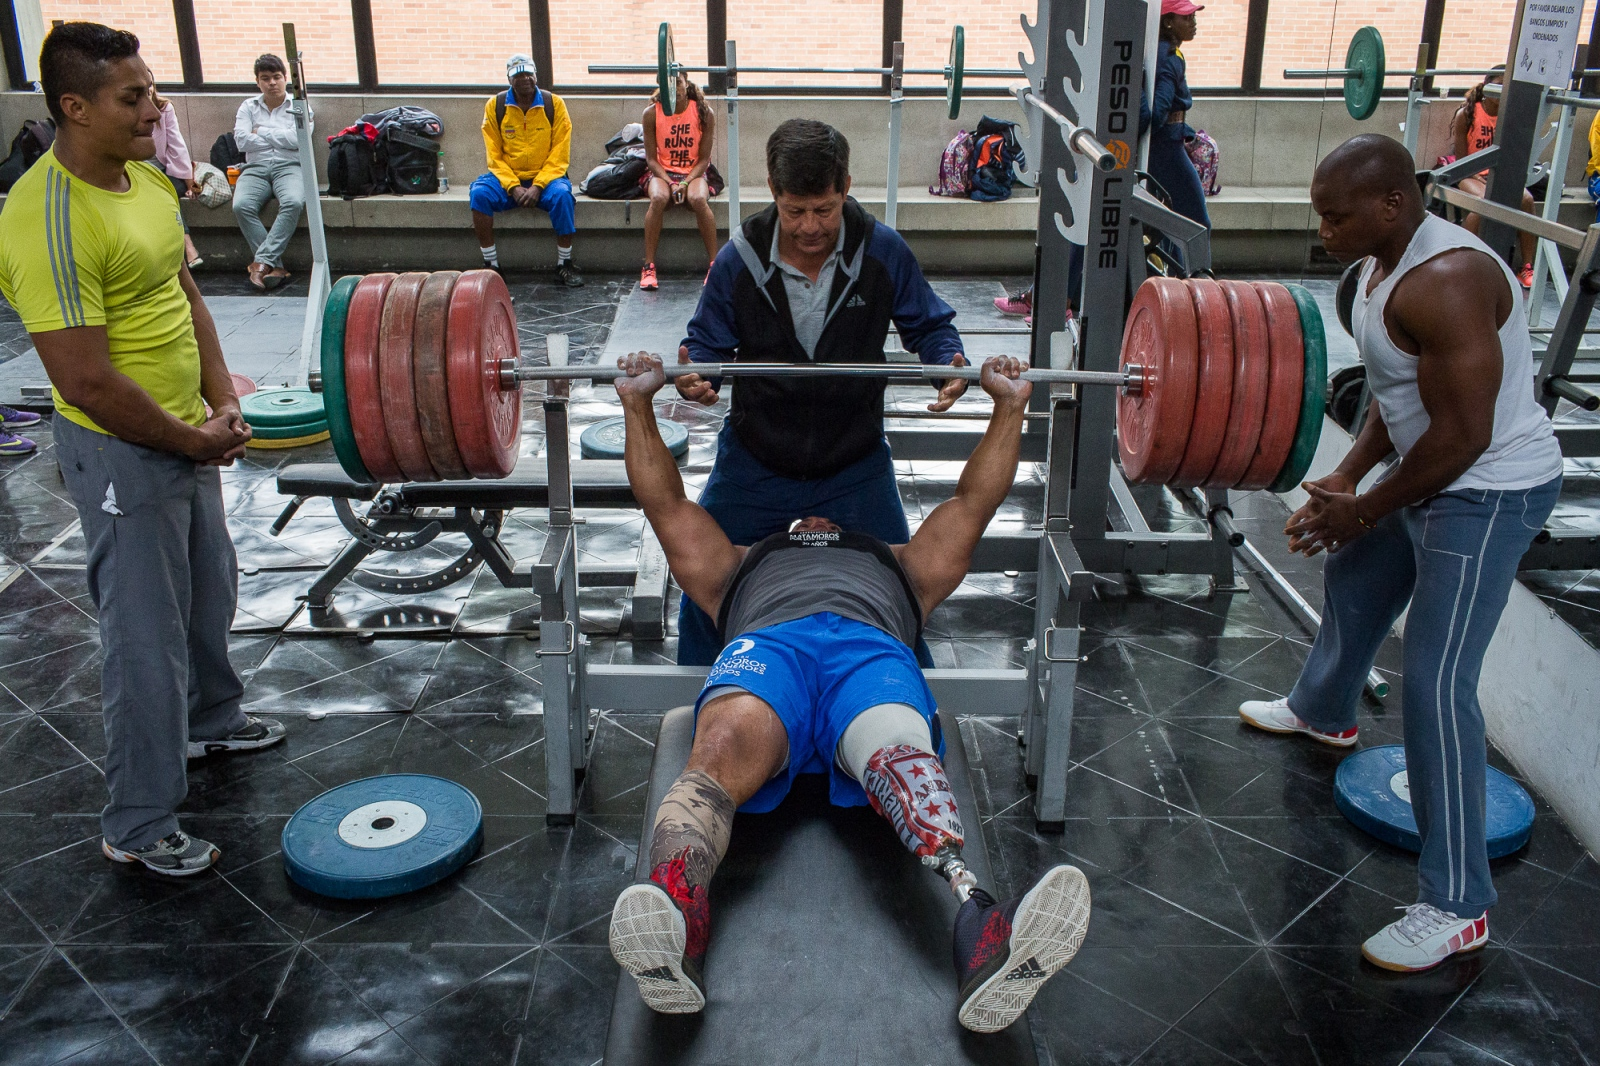 Fabio Torres, 39, lifts 240kgs under the supervision of his coach Henri Oviedo during a training session in the High Performance Center, Bogotá, 7th June, 2016.